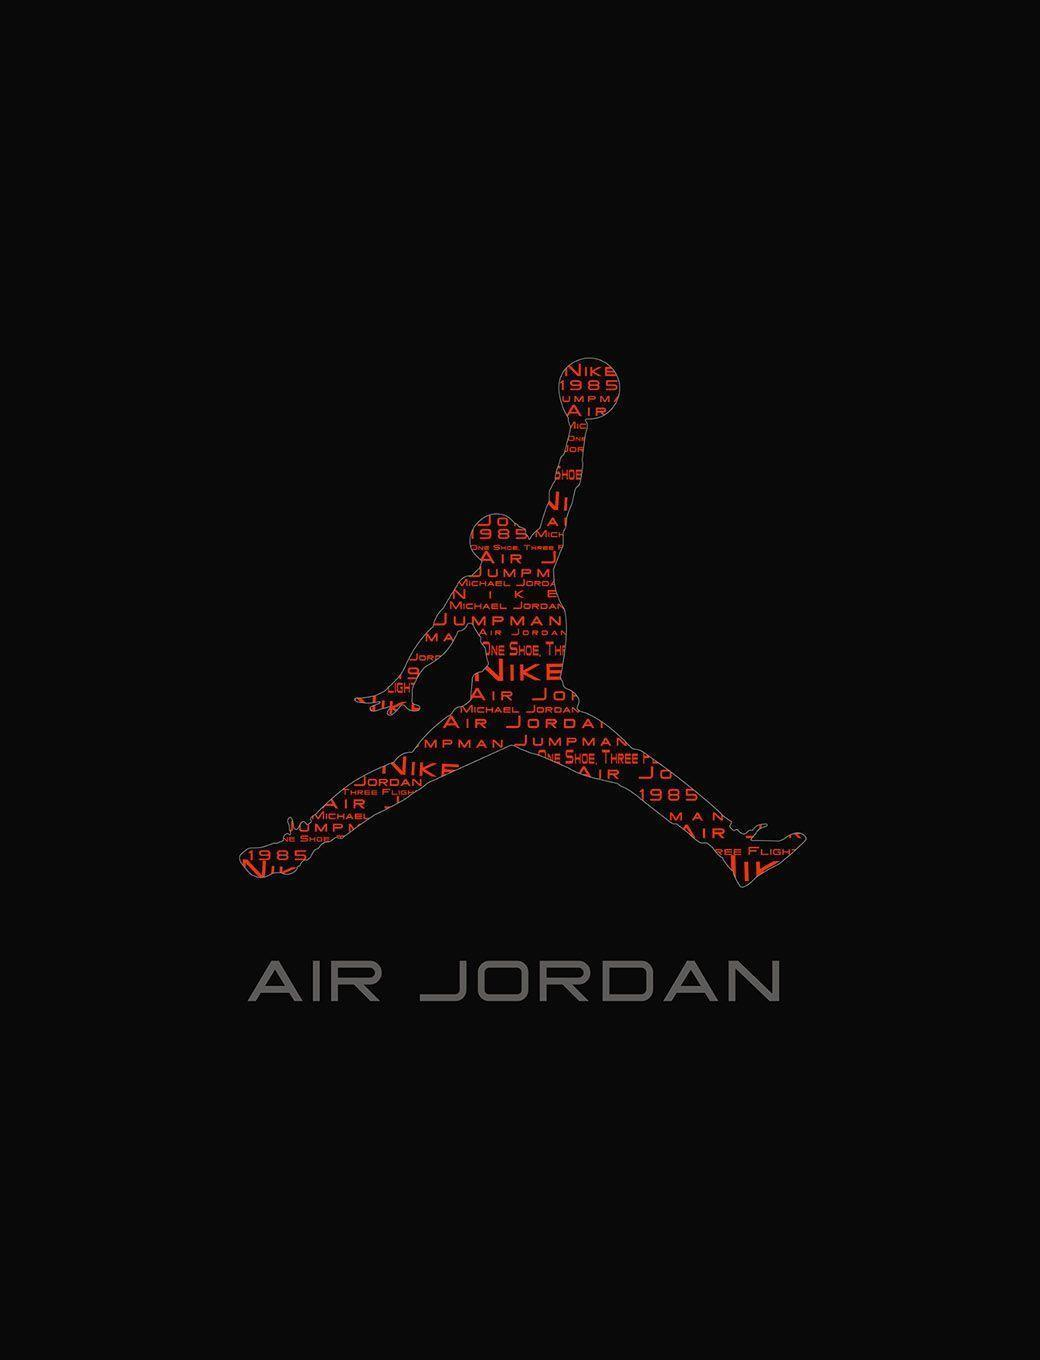 Air Jordan Logo - Air Jordan Logo Wallpapers - Wallpaper Cave